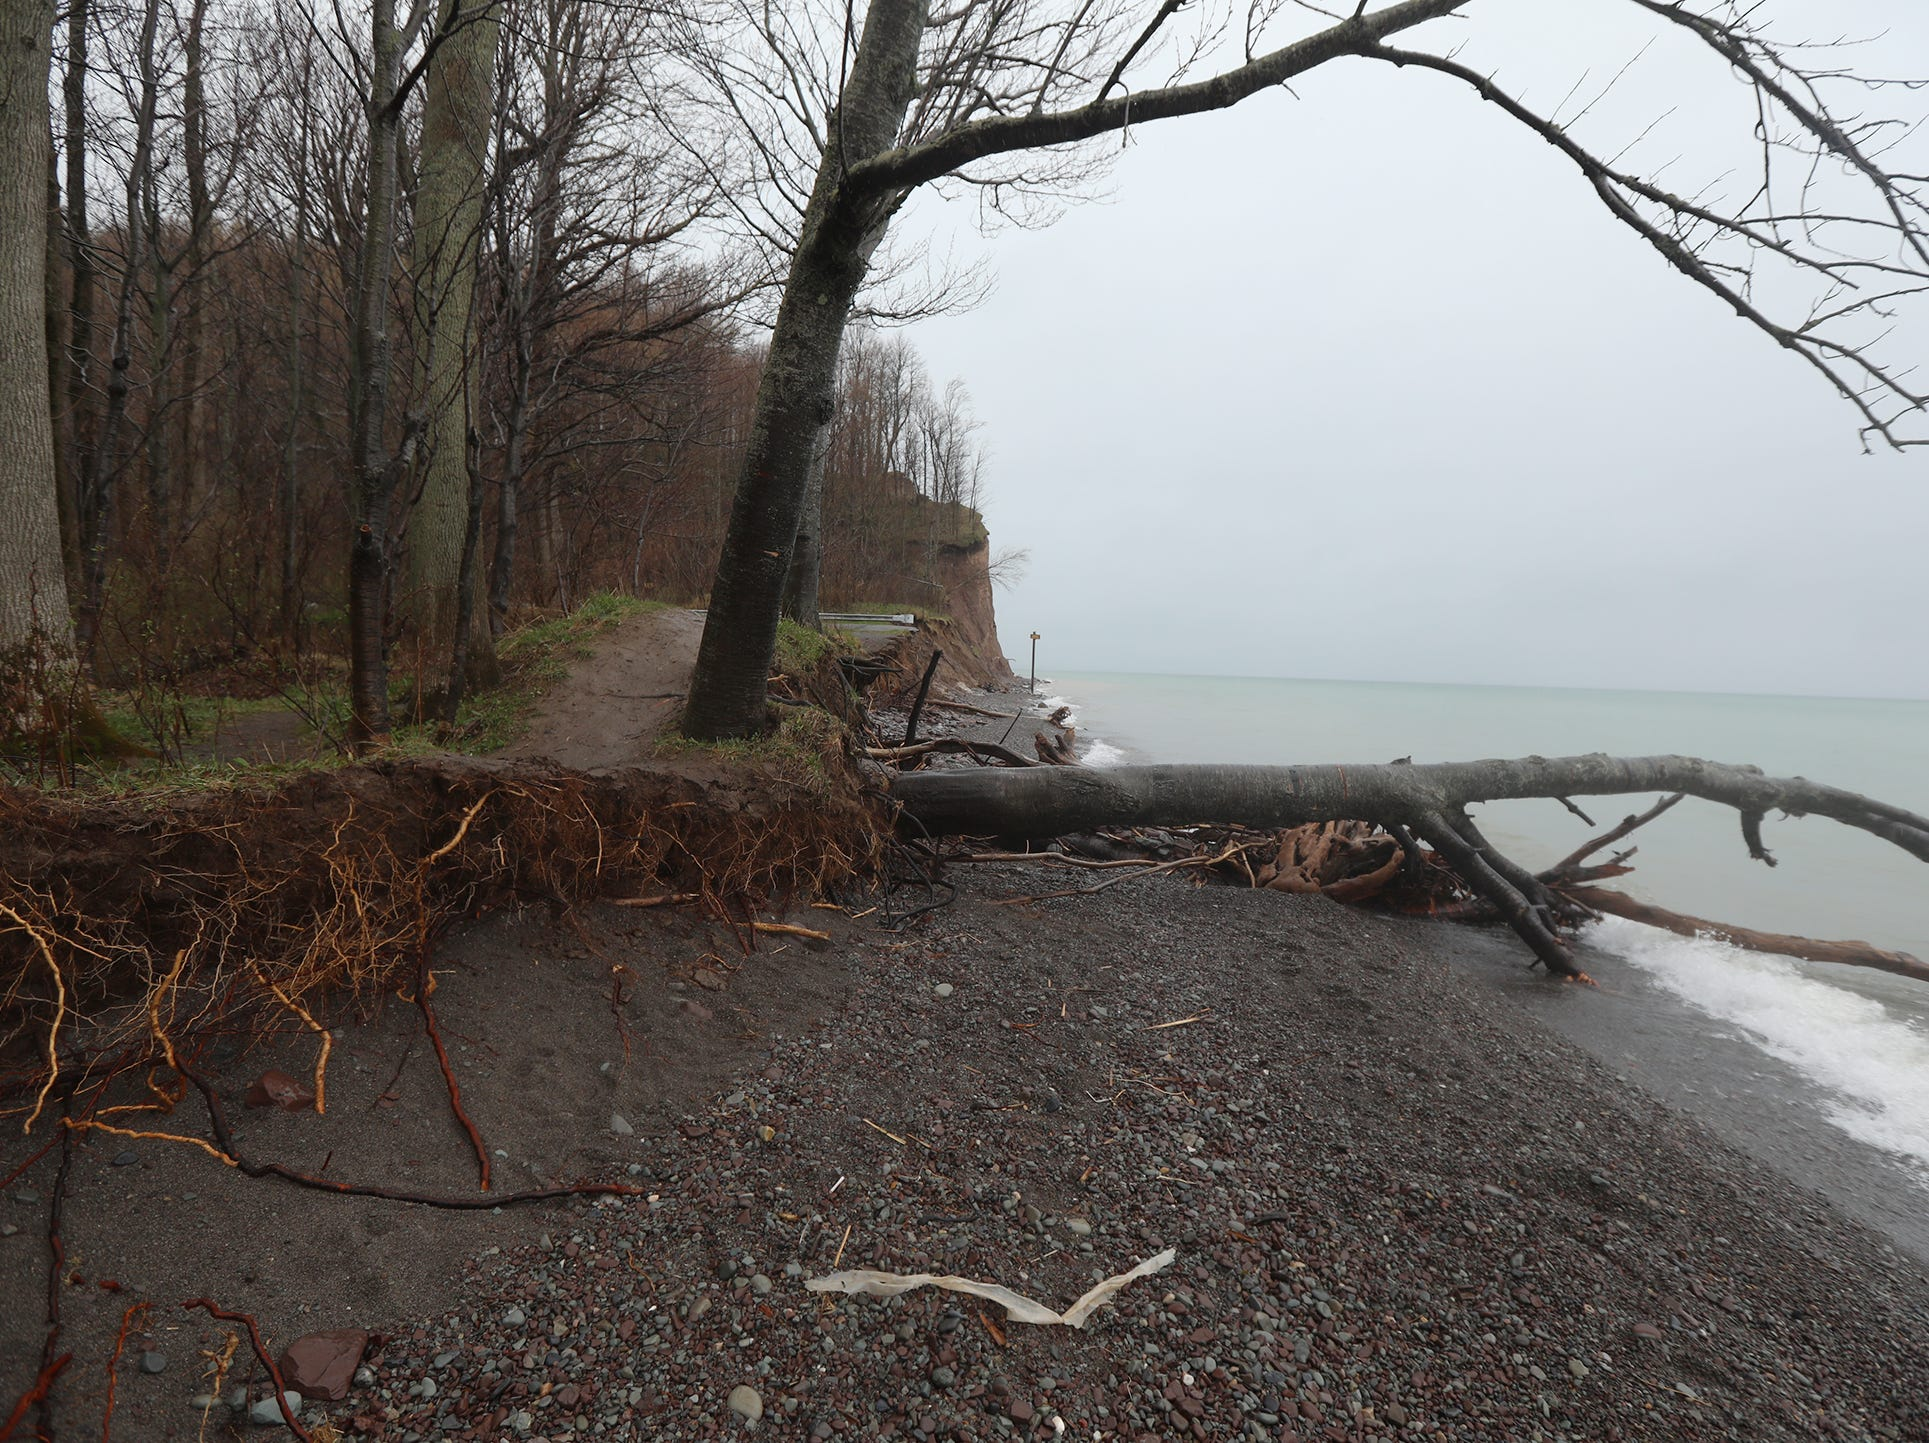 The lower trail along Lake Ontario has eroded in places uprooting trees.